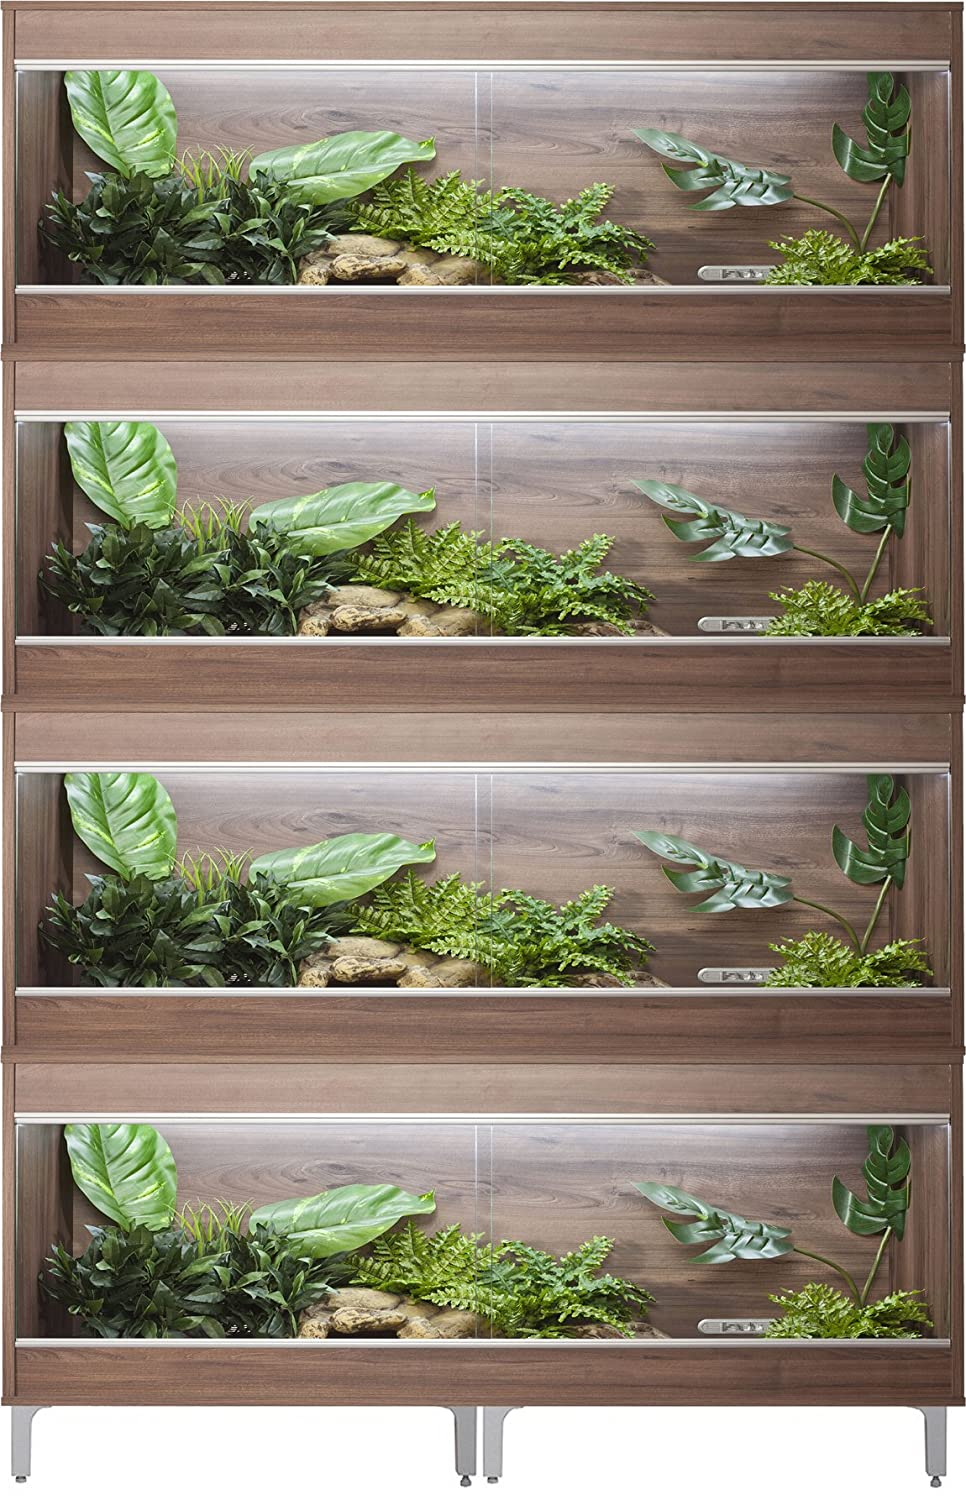 Vivexotic Repti-Home 4-Stack Vivariums - Large Walnut with Feet 115cm